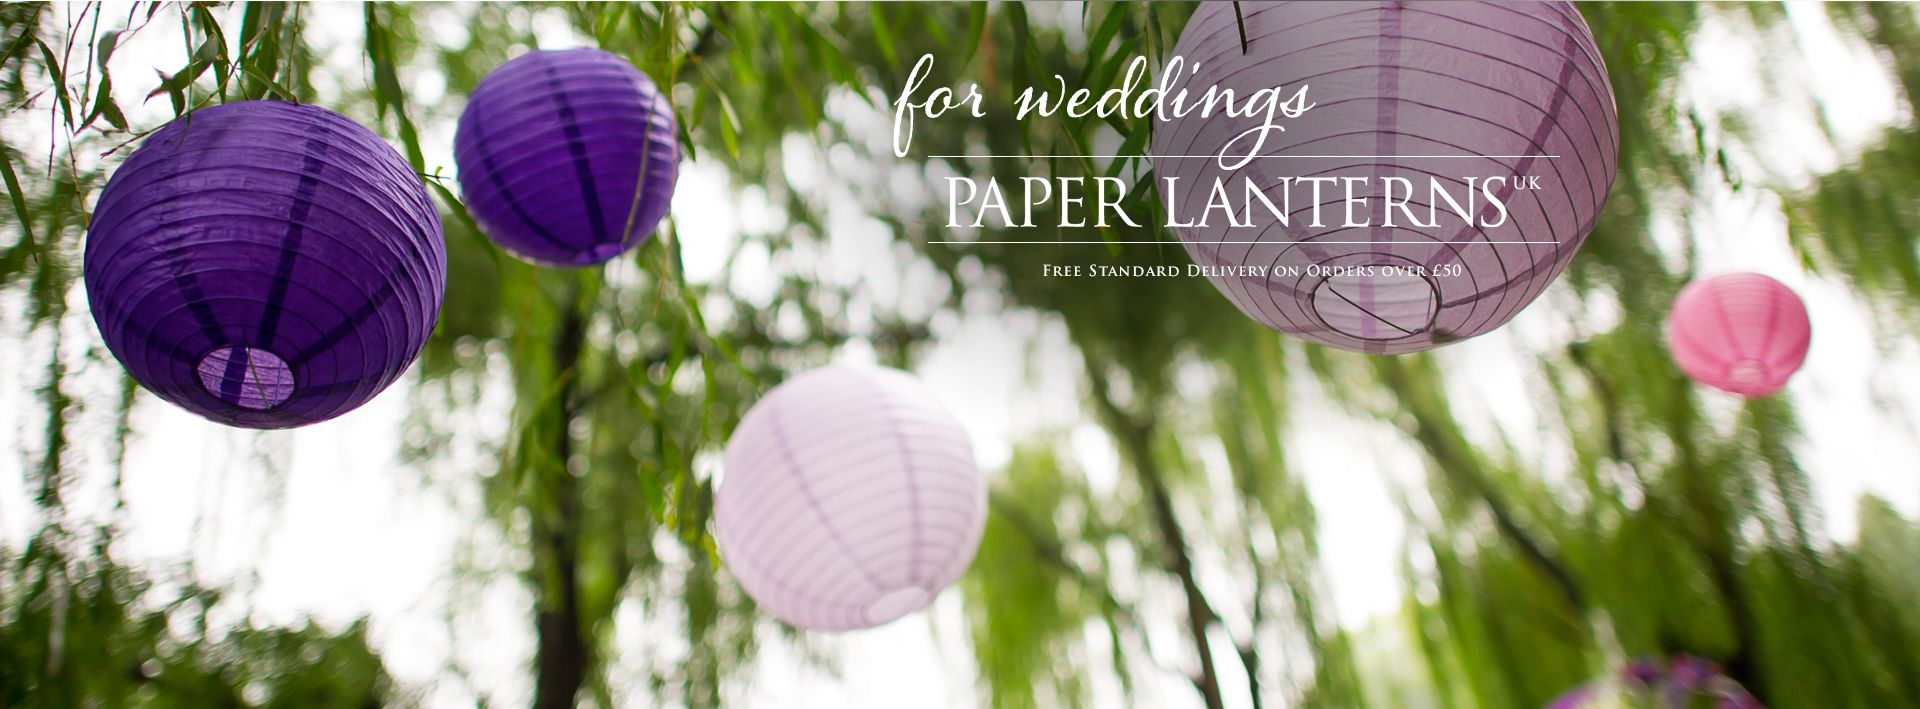 Paper Lanterns for weddings v2